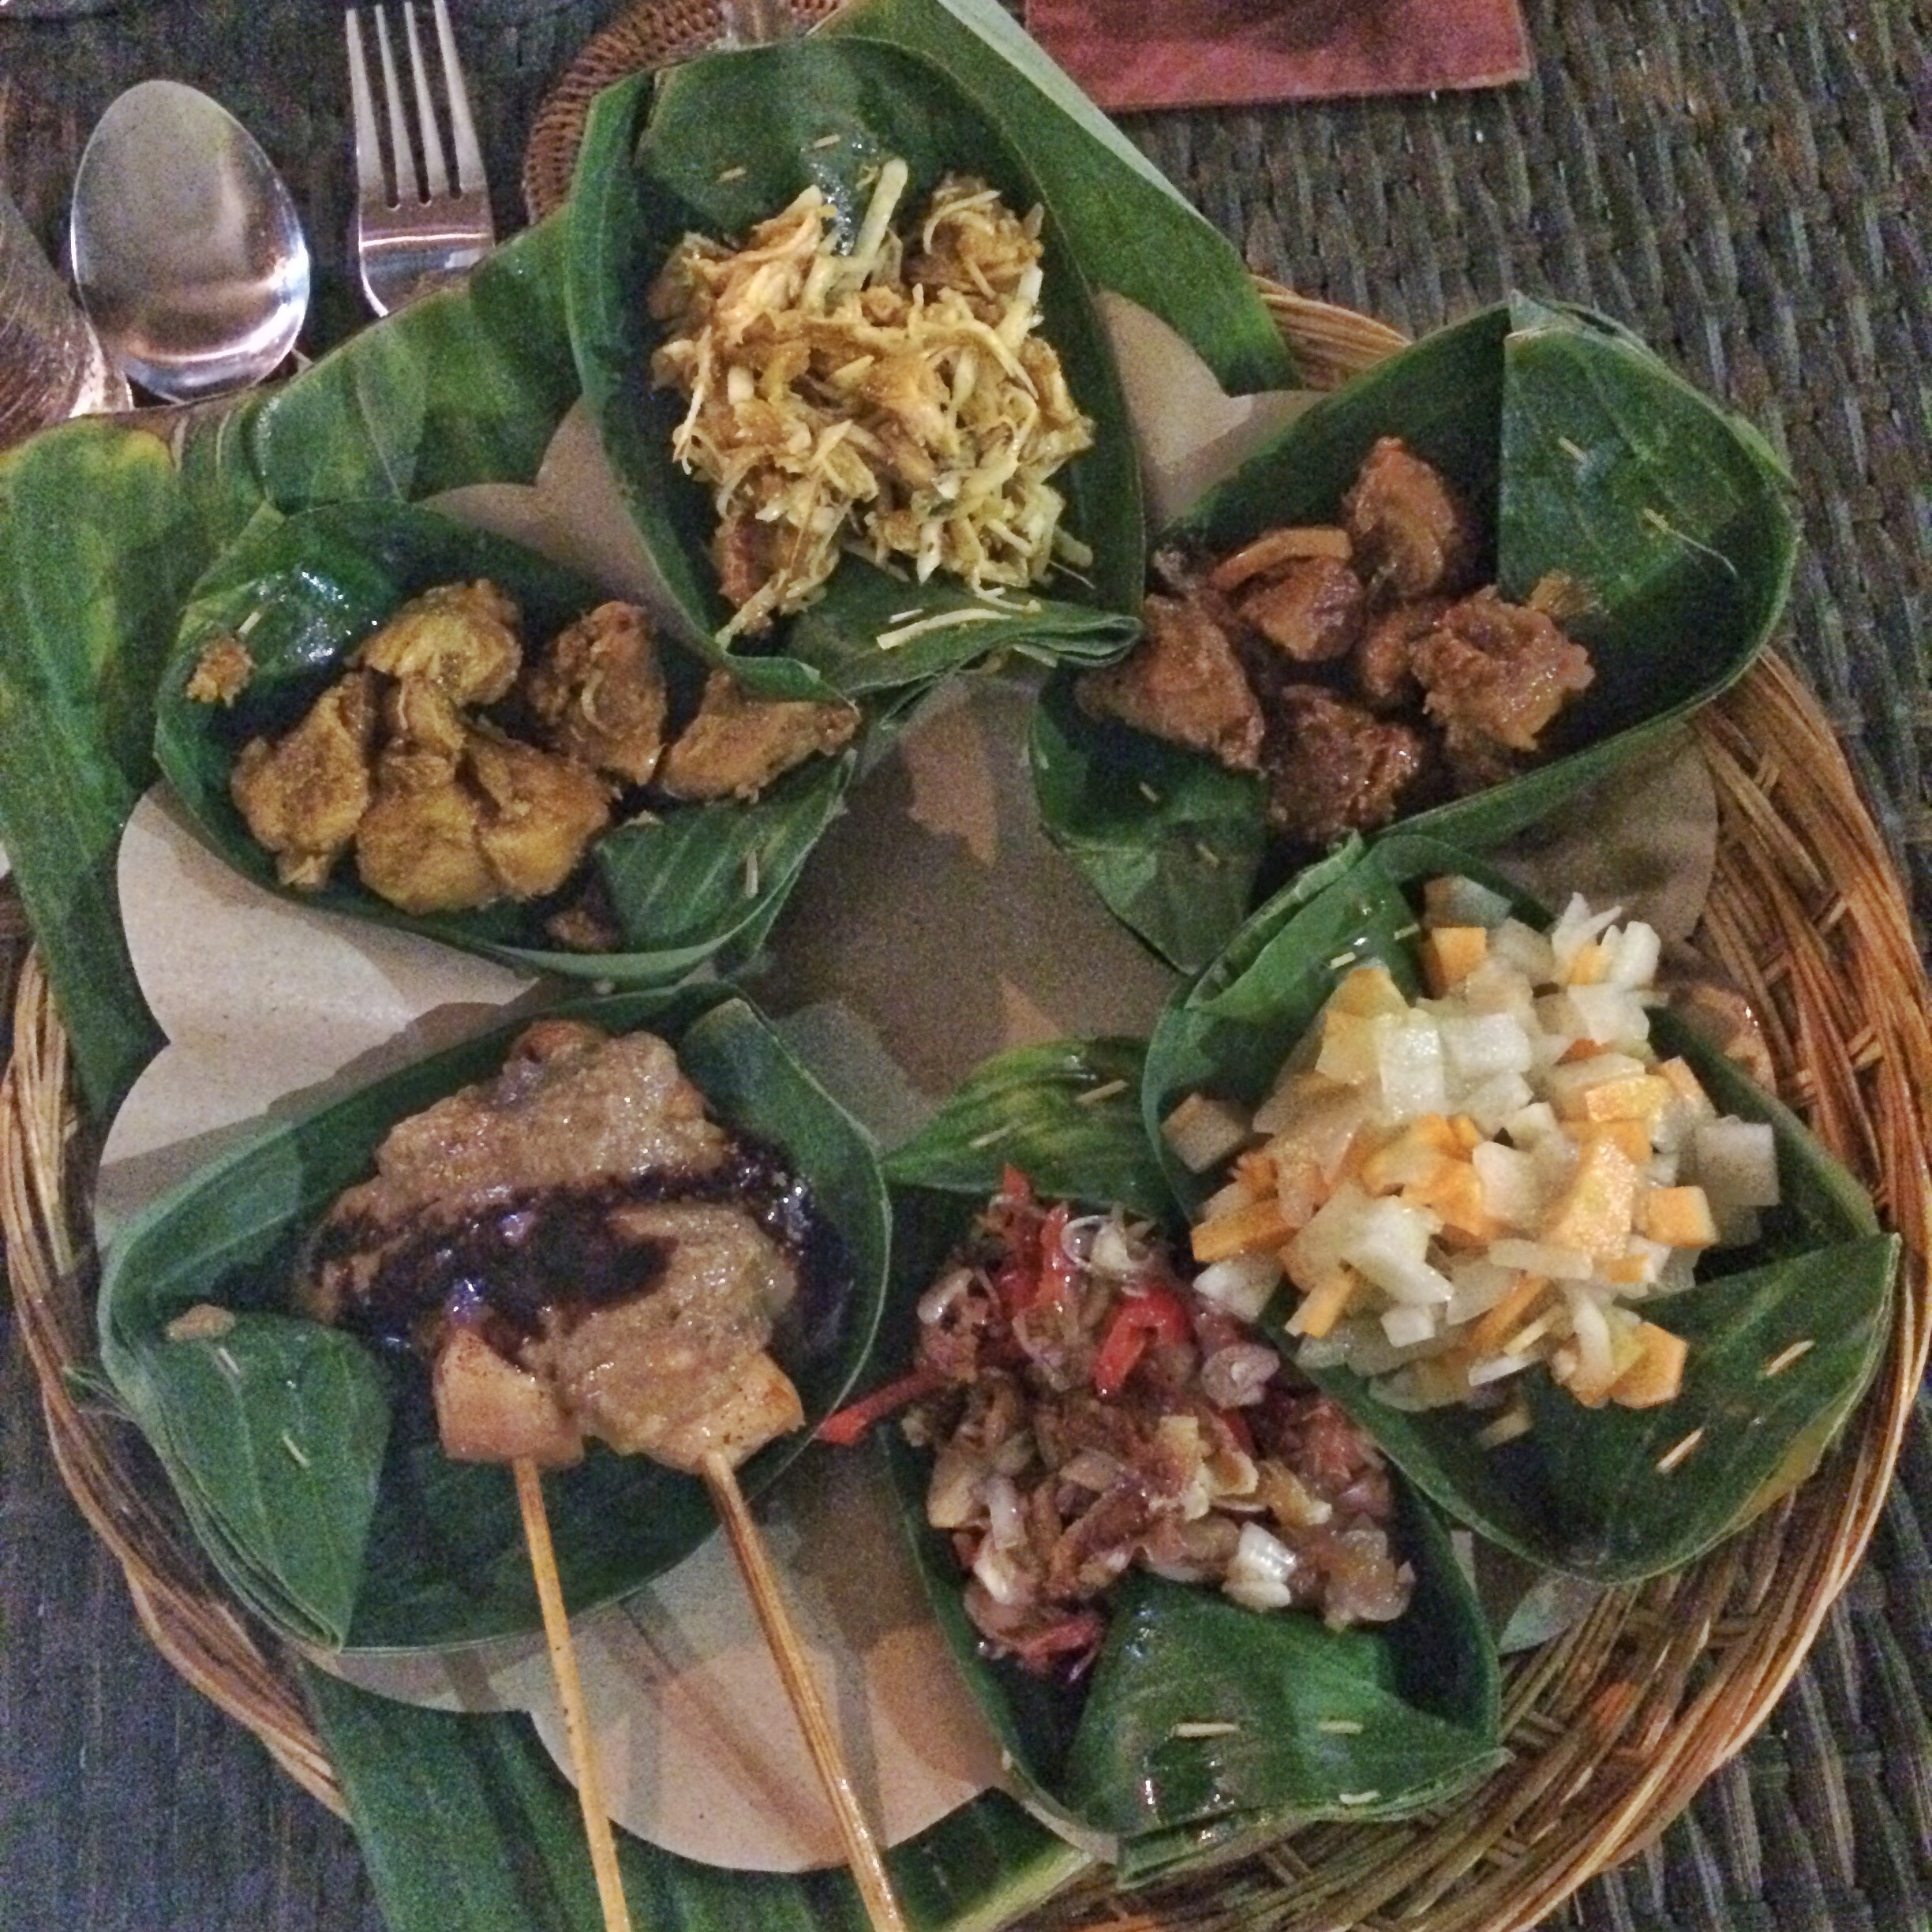 Balinese food via fittravels.com